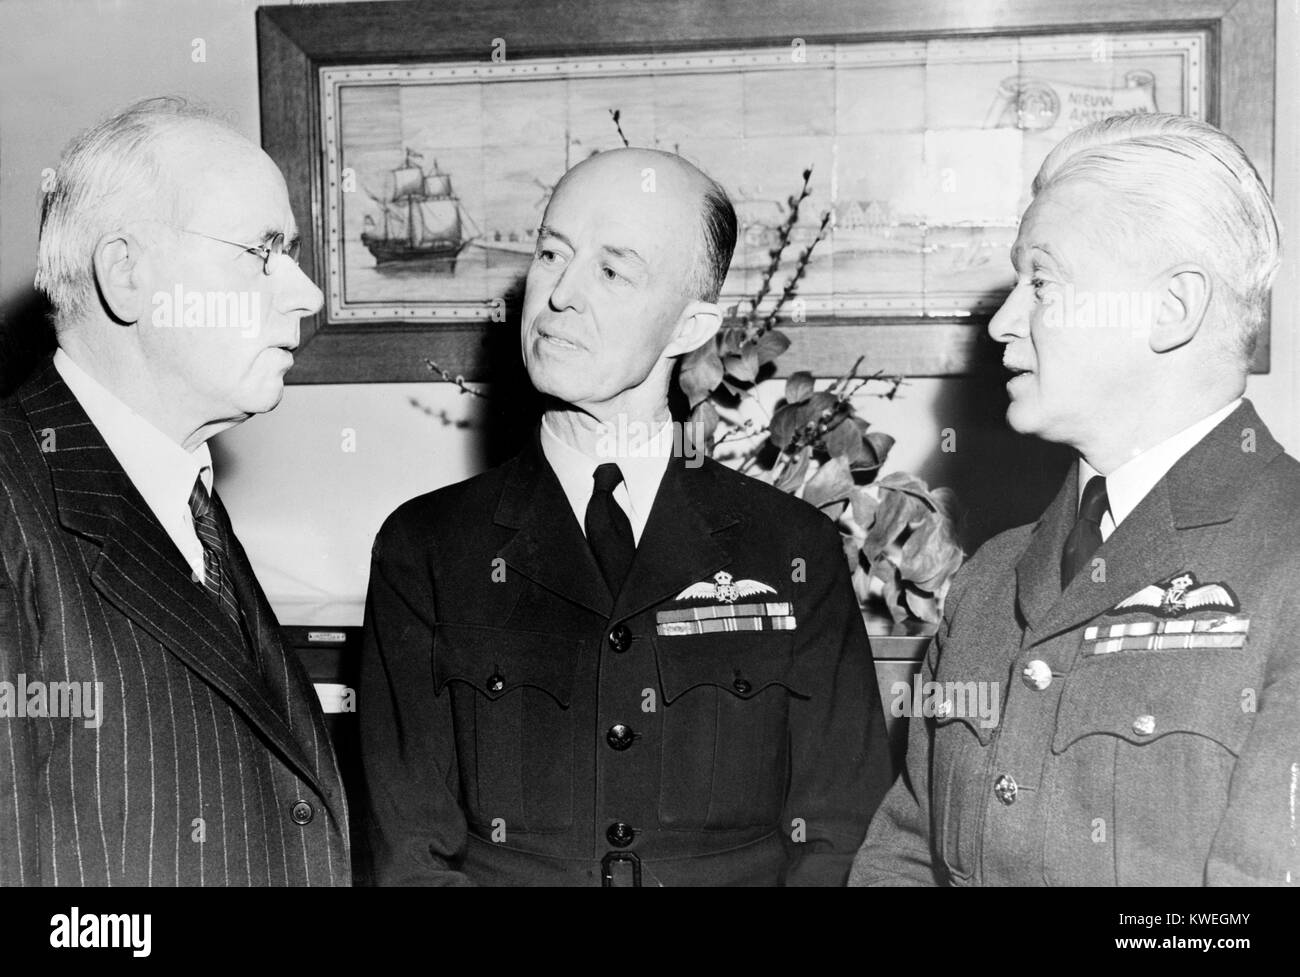 Prime Minister Peter Fraser of New Zealand, Air Marshal Richard Williams of the Royal Australian Air Force, and - Stock Image